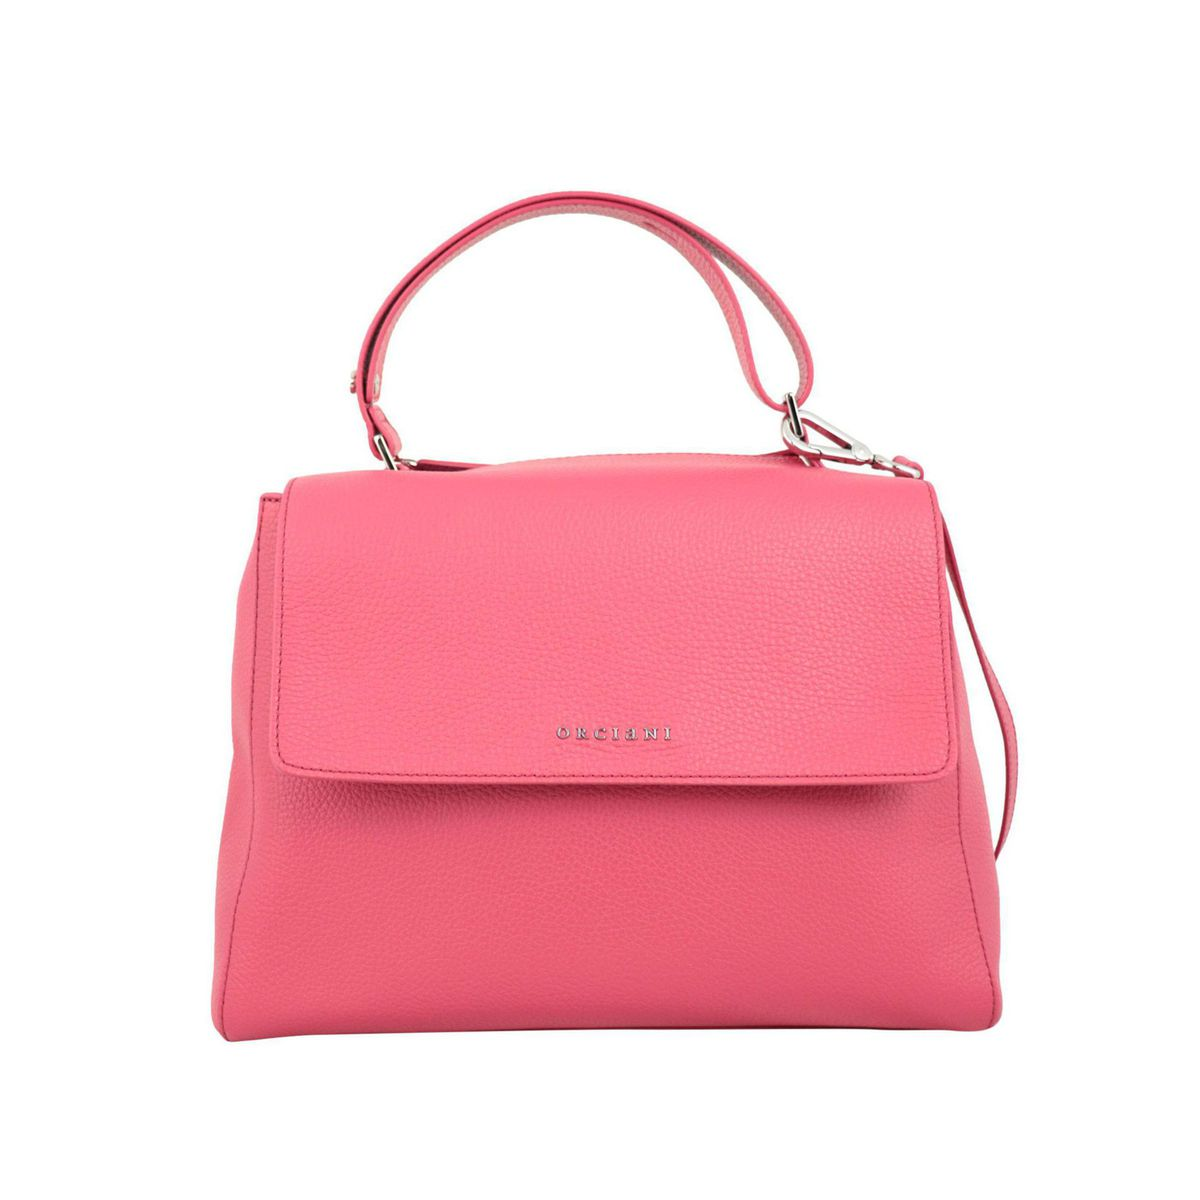 Sveva medium bag in Micron leather Strawberry Orciani